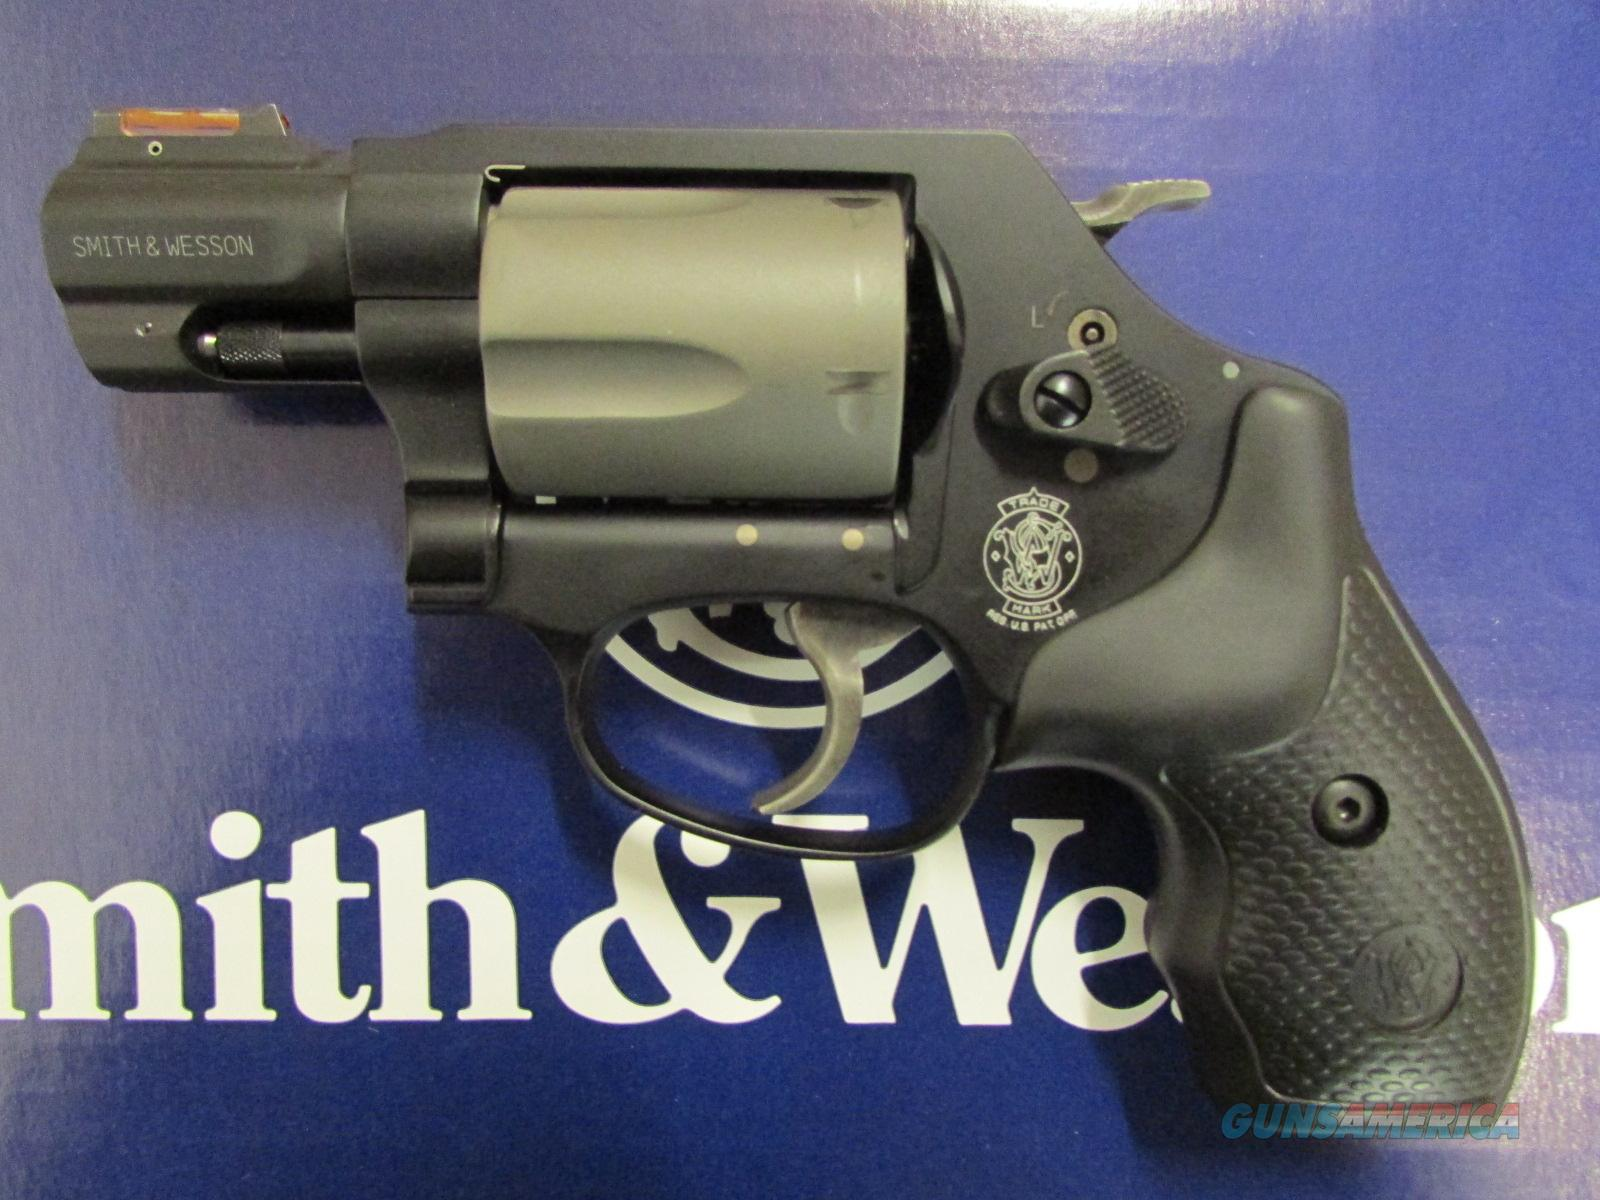 Smith & Wesson Model 360PD AirLite .357 Magnum  Guns > Pistols > Smith & Wesson Revolvers > Performance Center